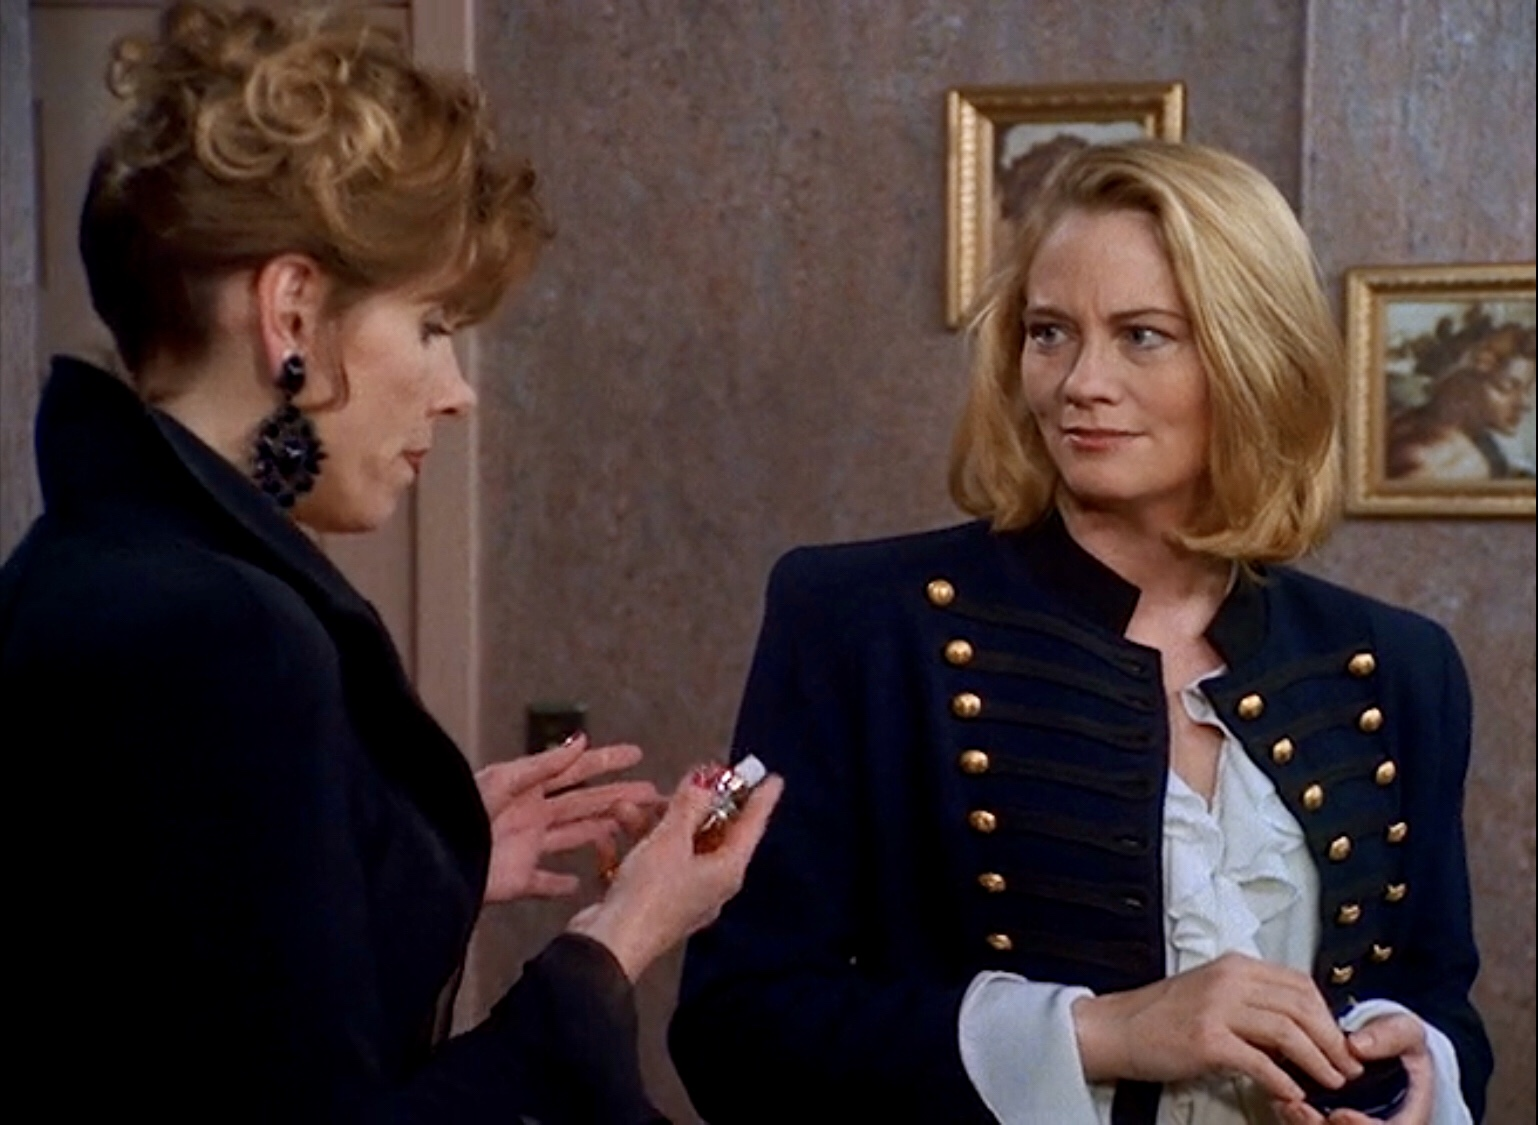 Cybill Shepherd and Christine Baranski in Cybill (1995)